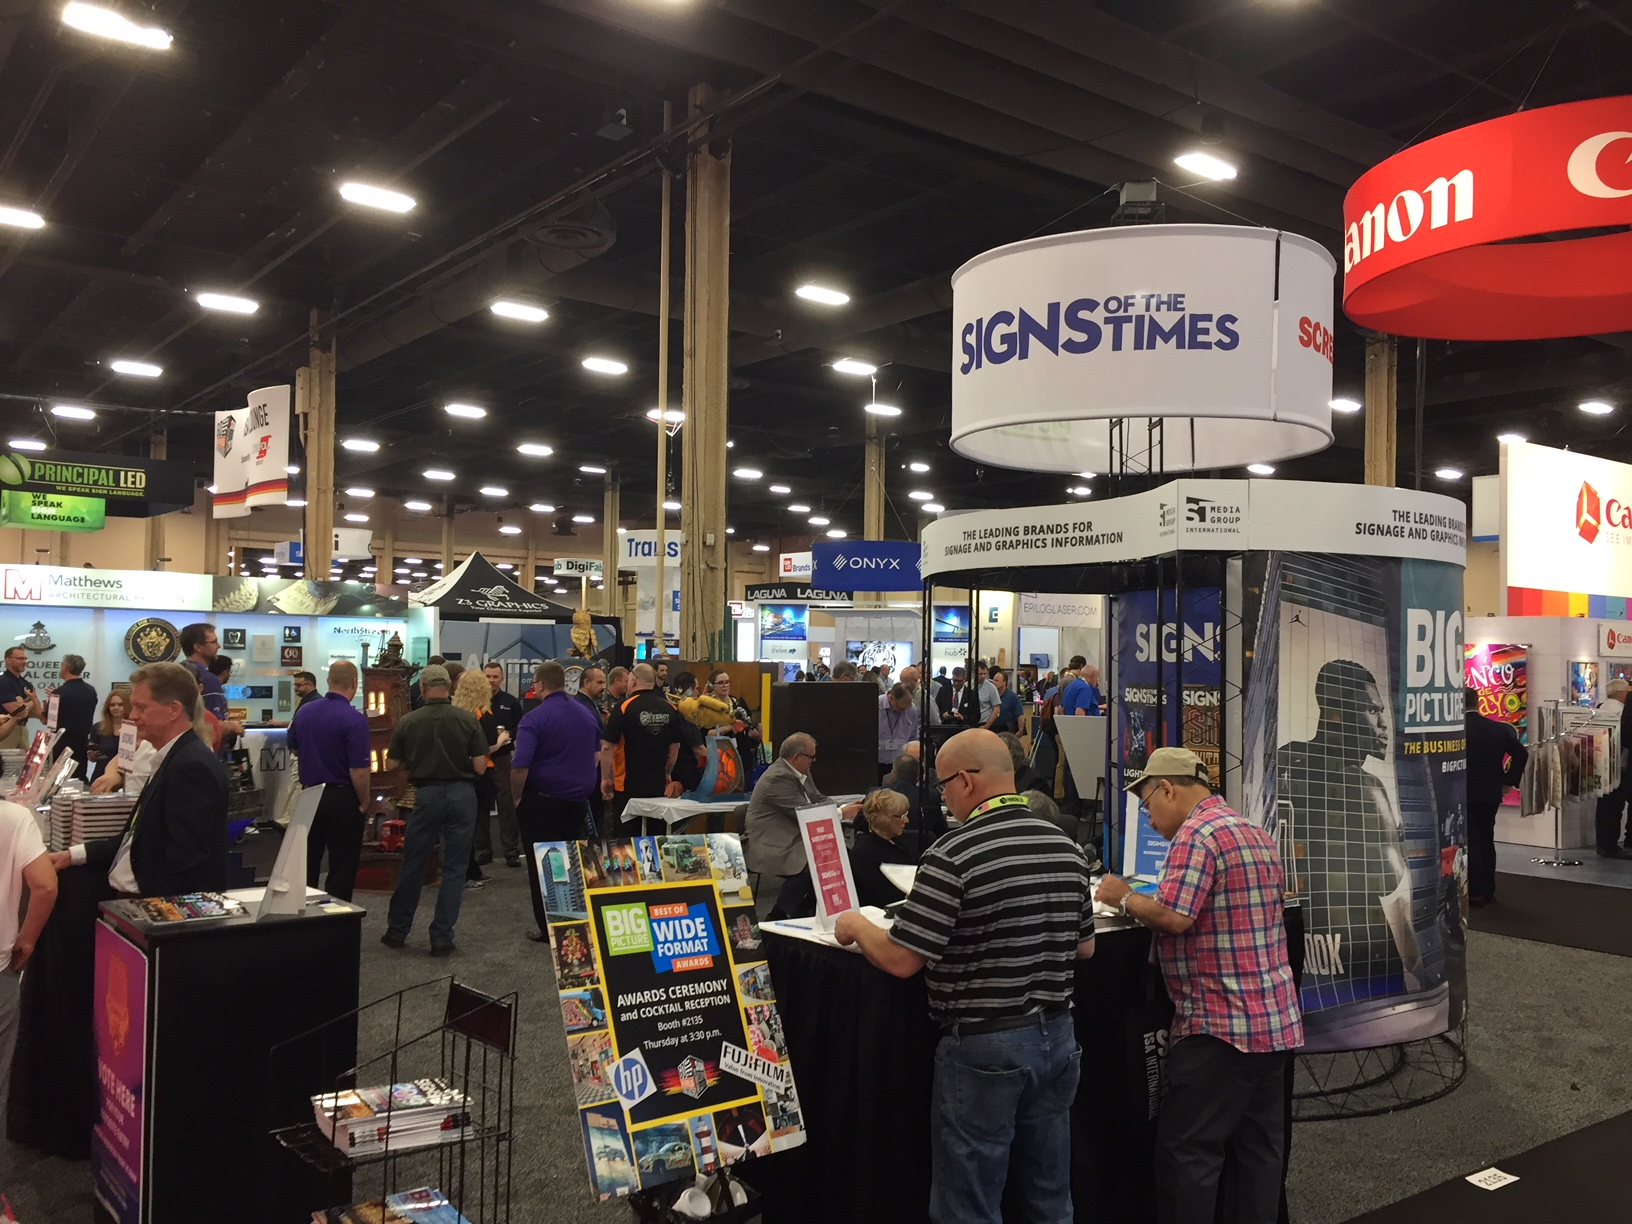 Signs of the Times/ST Media Group International's ISA booth played host to the 2019 Sign Invitational, as well as Big Picture's inaugural Best of Wide Format Awards.